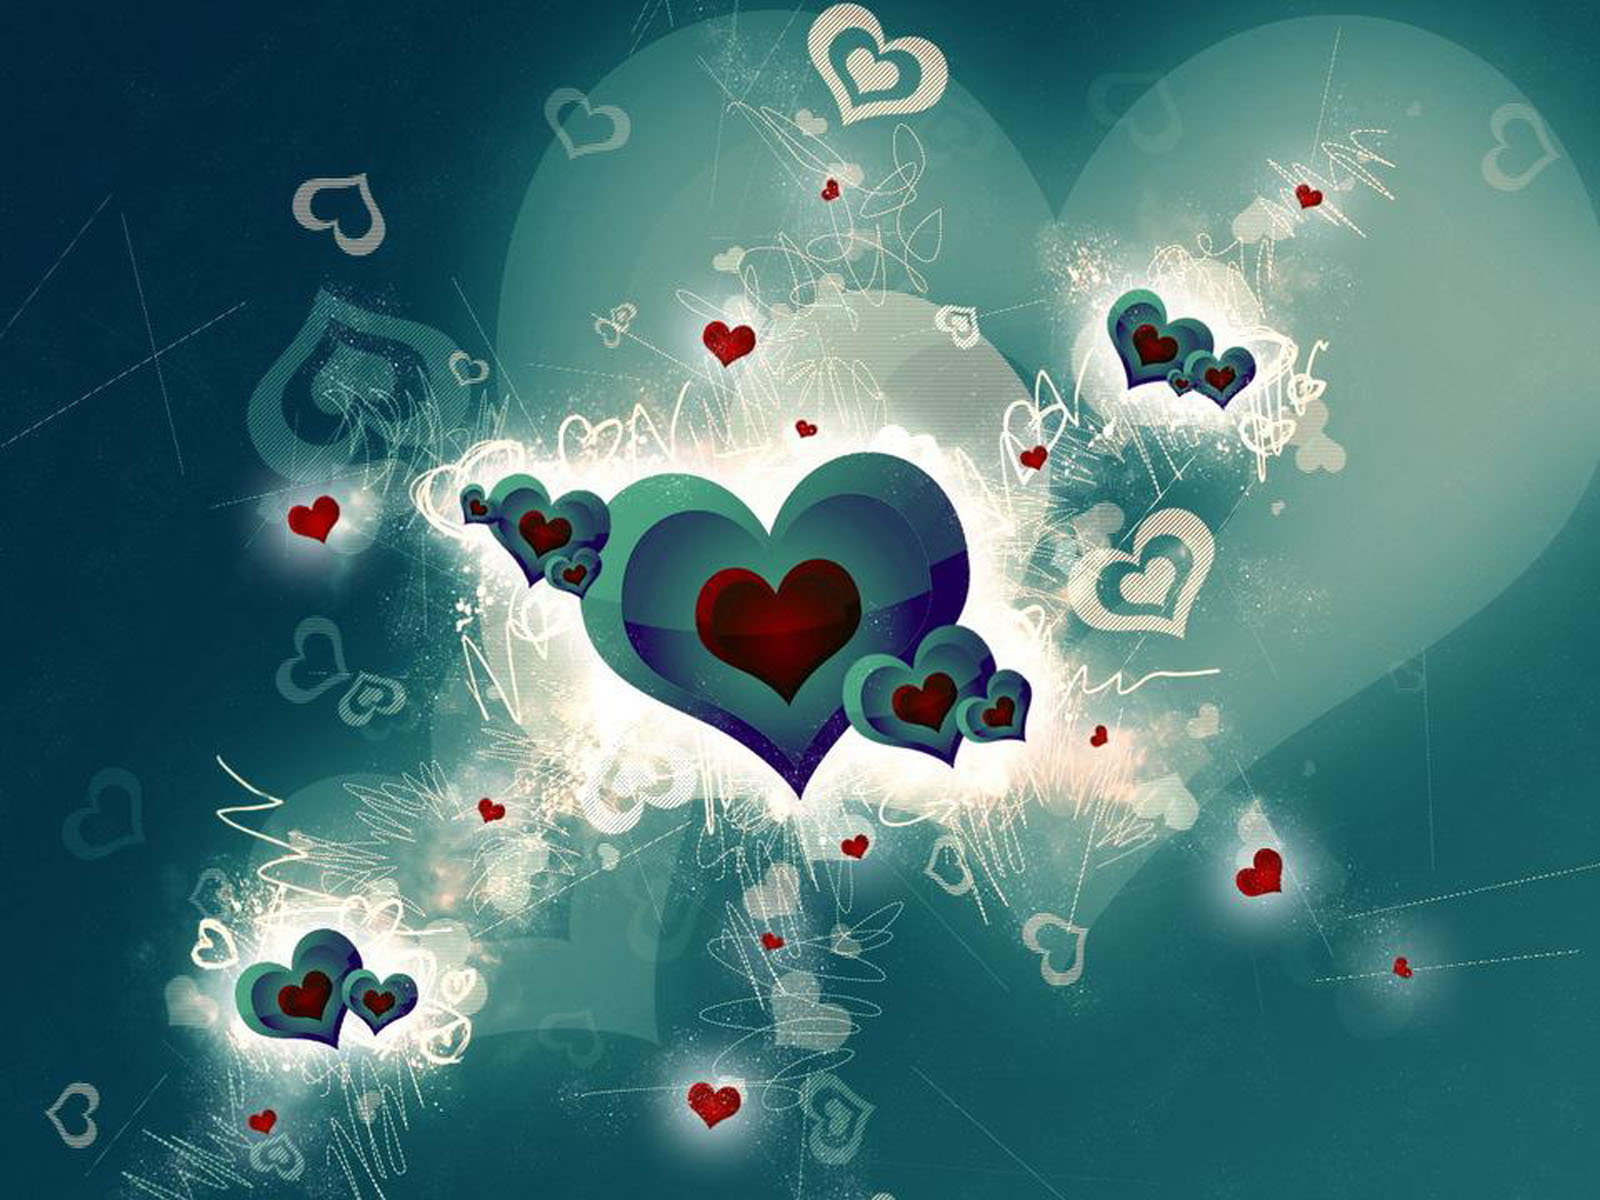 wallpapers: 3D Heart Wallpapers Wallpapers